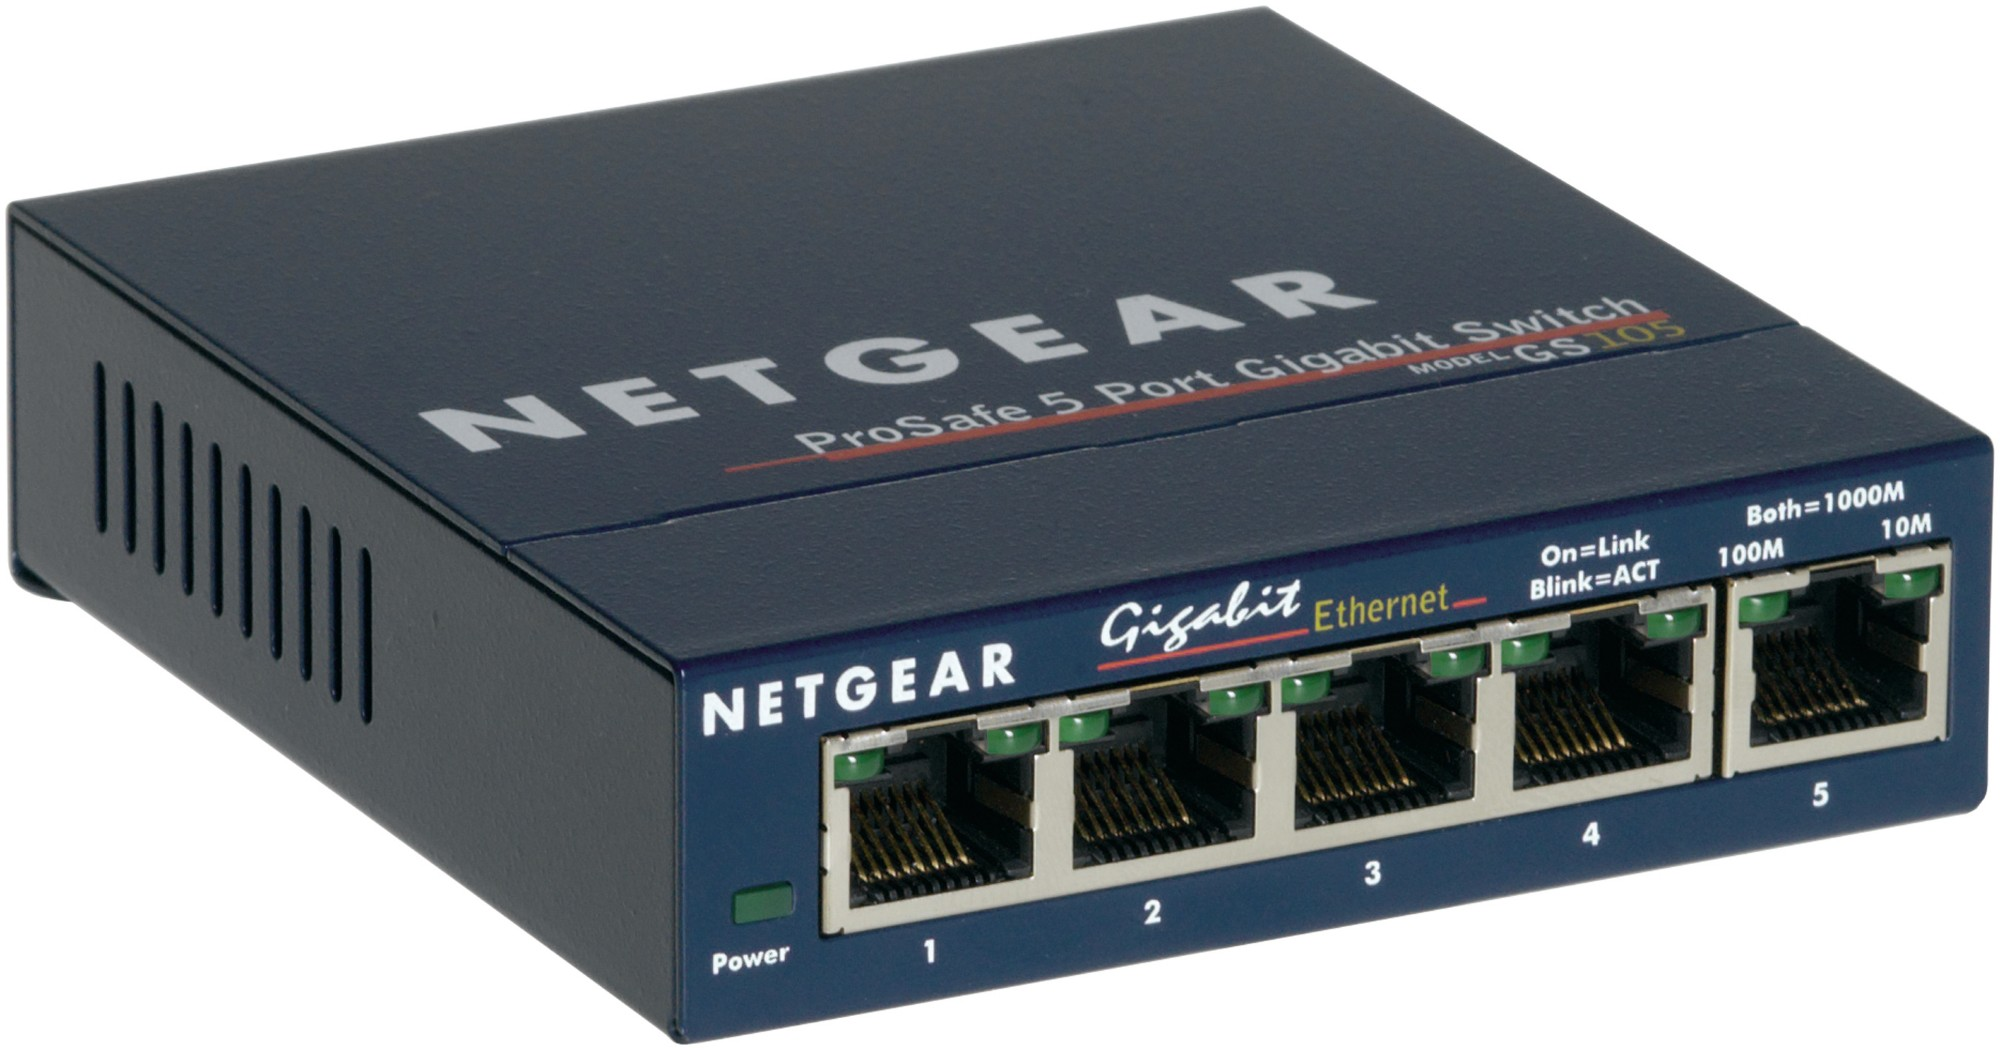 NETGEAR GS105 UNMANAGED NETWORK SWITCH GIGABIT ETHERNET (10/100/1000) BLUE